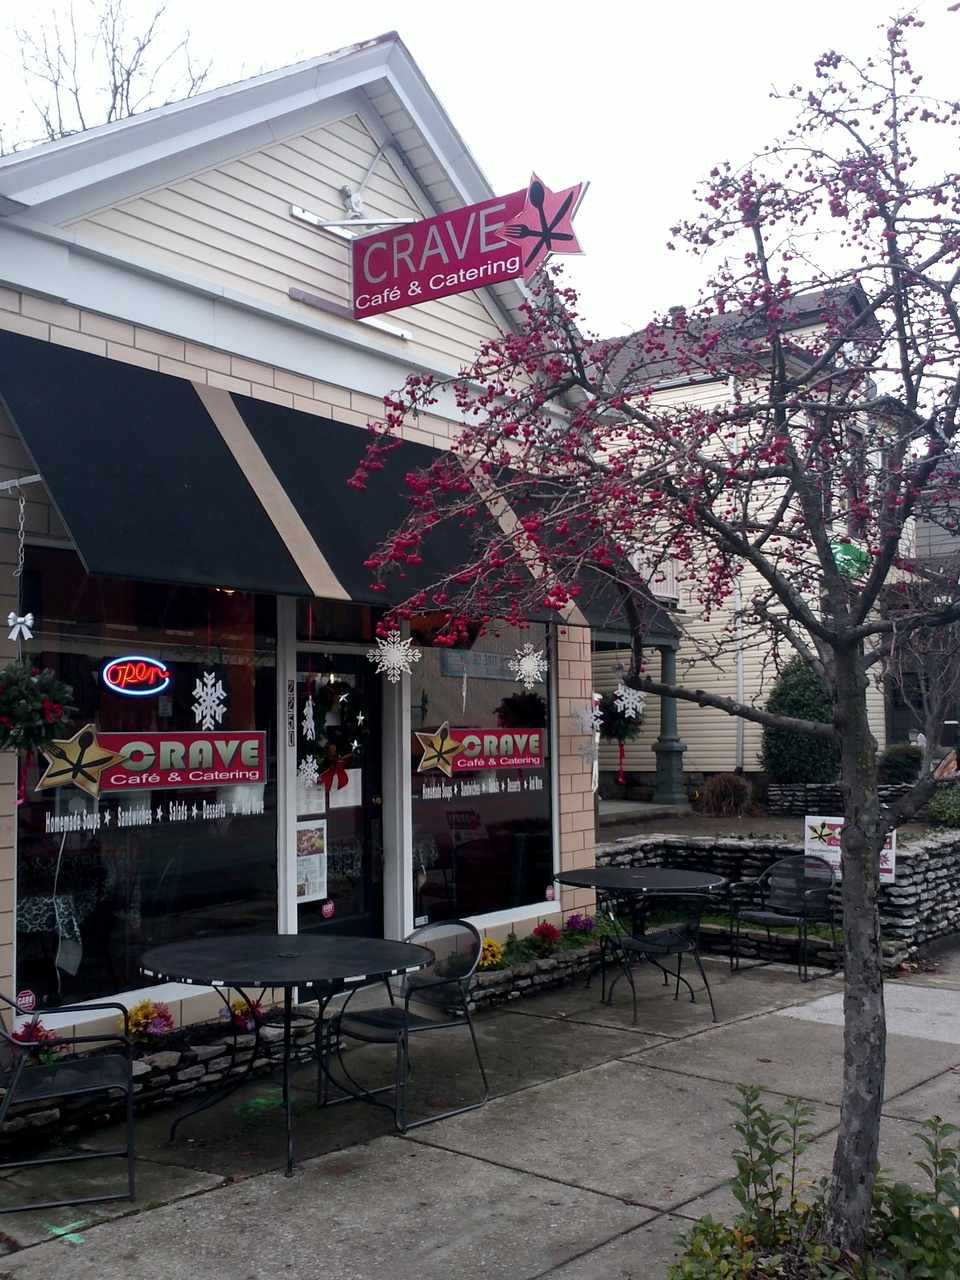 Crave on Frankfort Ave. in Louisville, KY